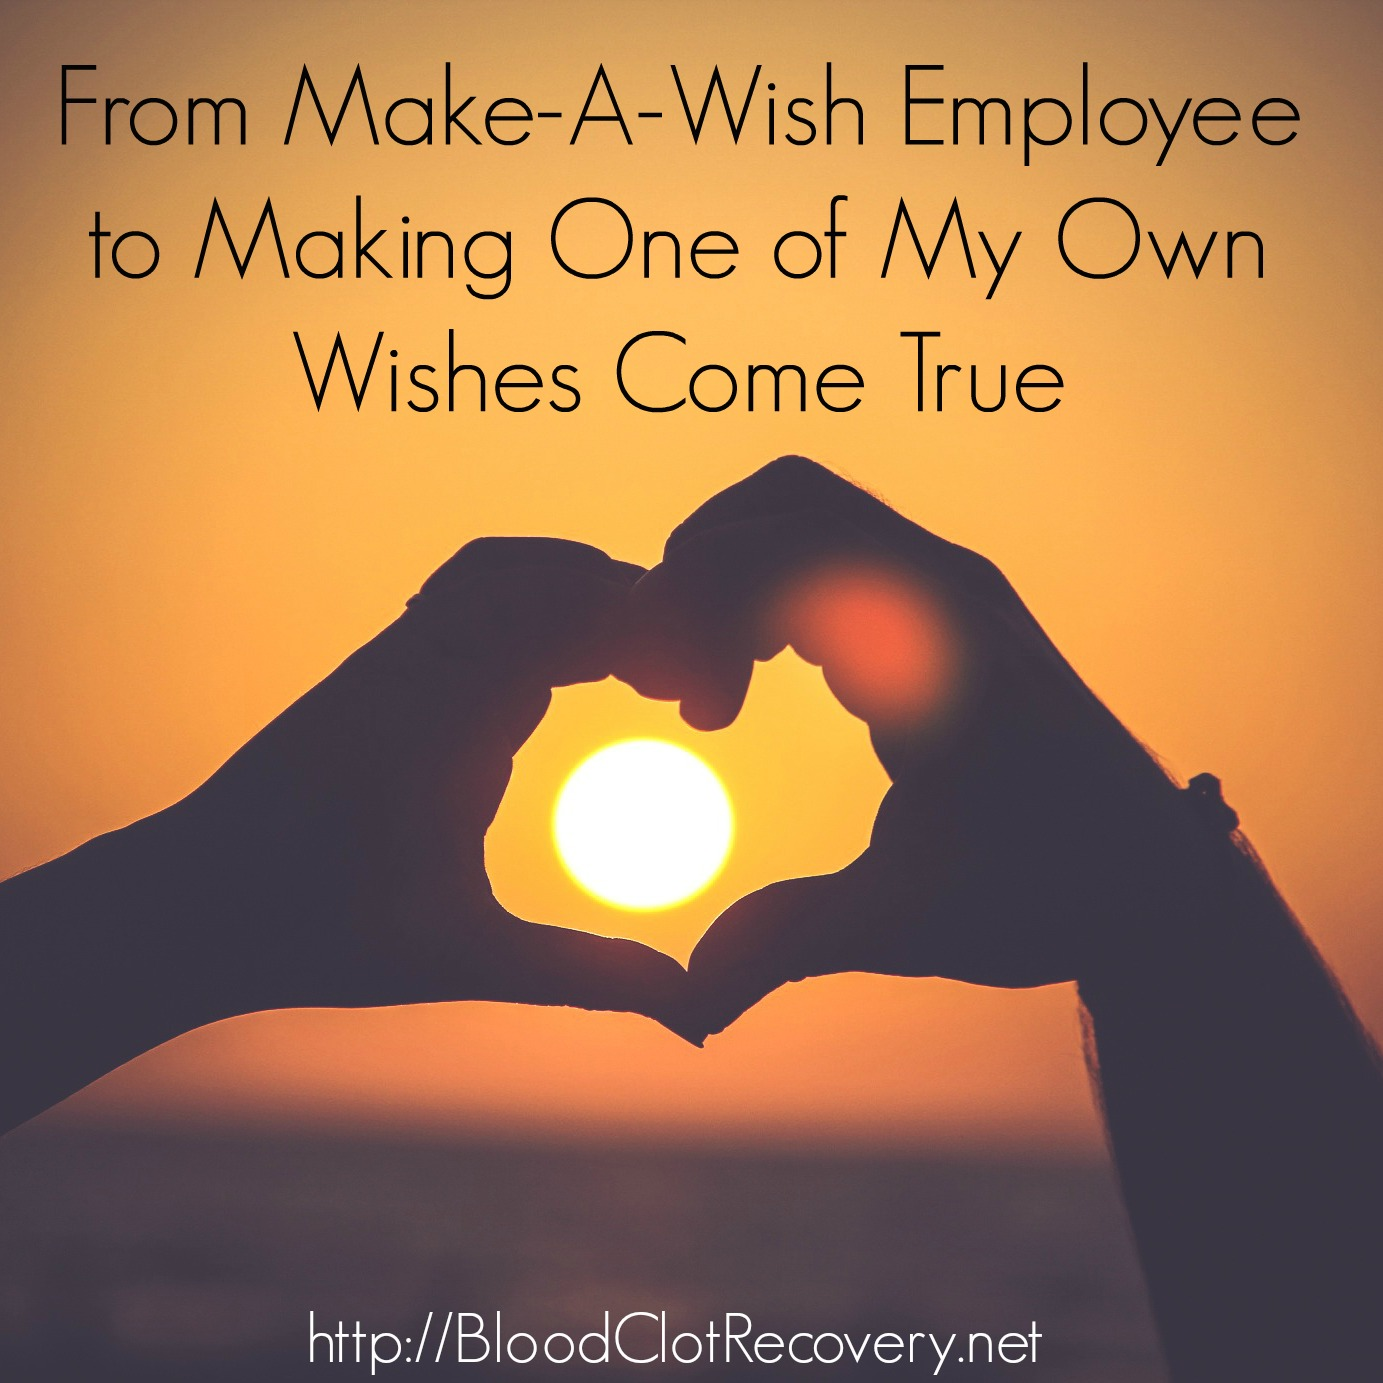 From Make A Wish Employee to Making One of